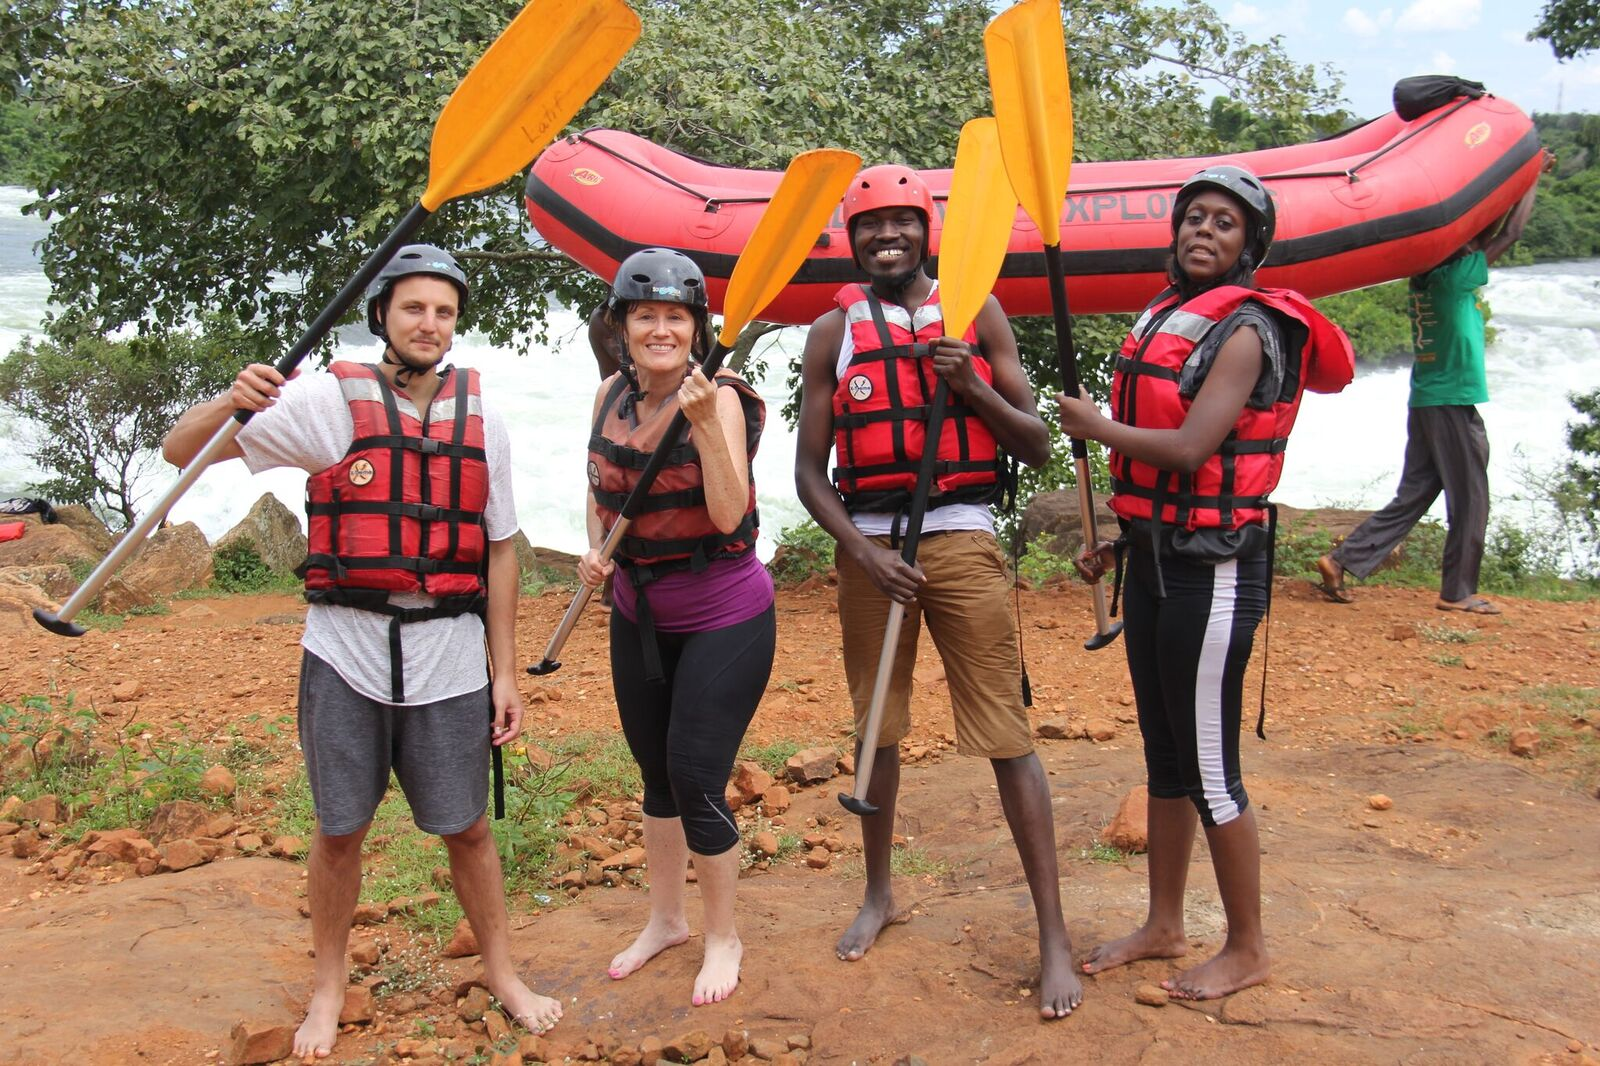 white water rafting Nile River Explorers (10)